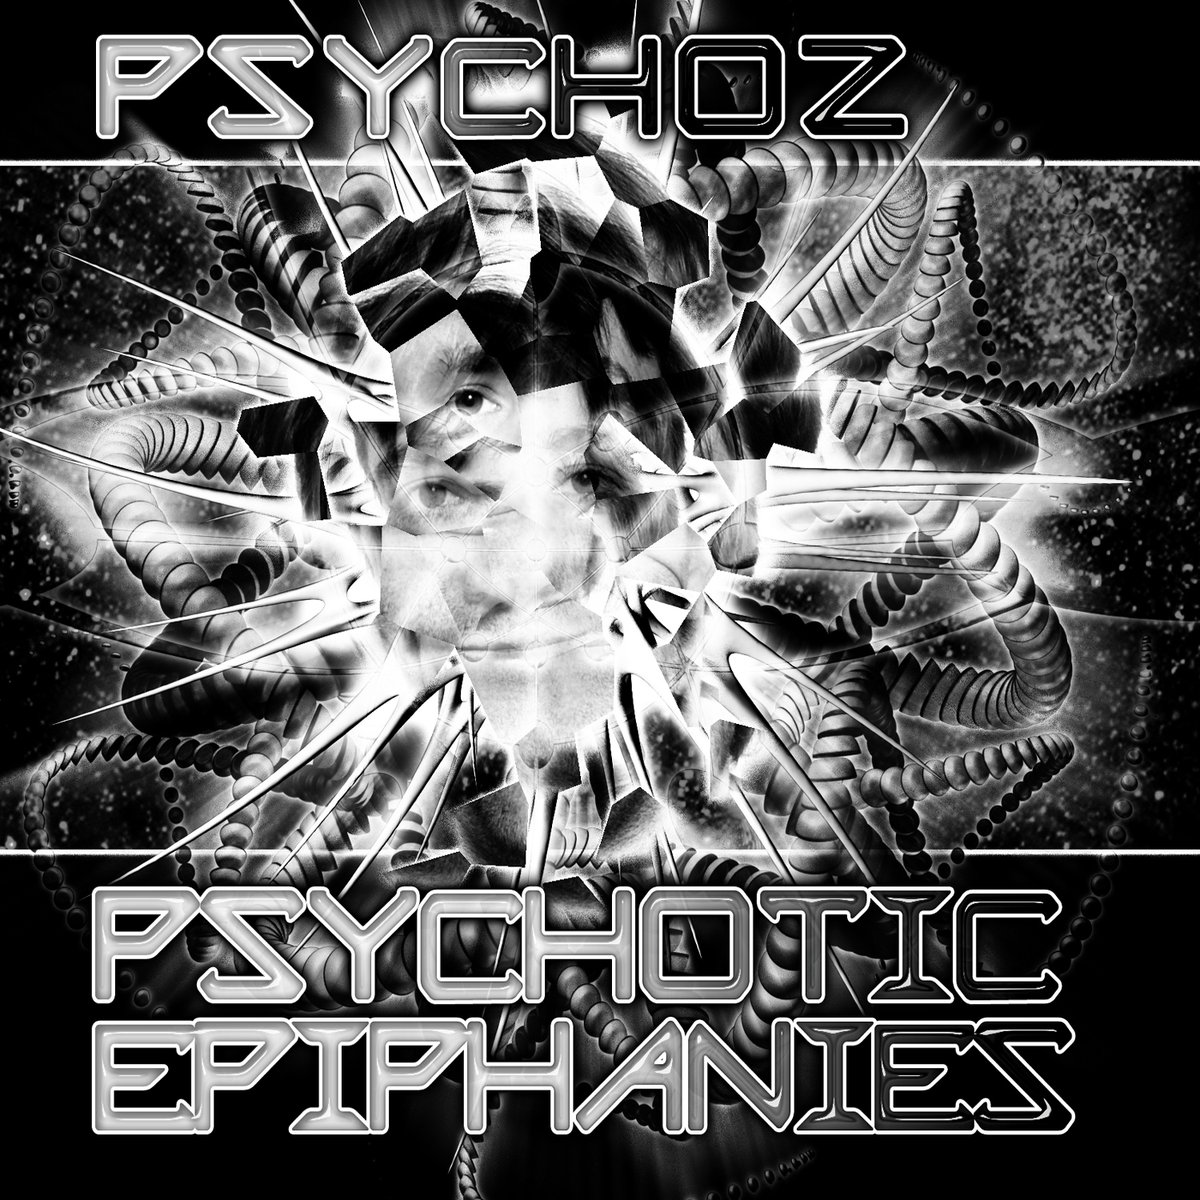 Psychoz - Darkness Is Coming @ 'Psychotic Epiphanies' album (electronic, goa)